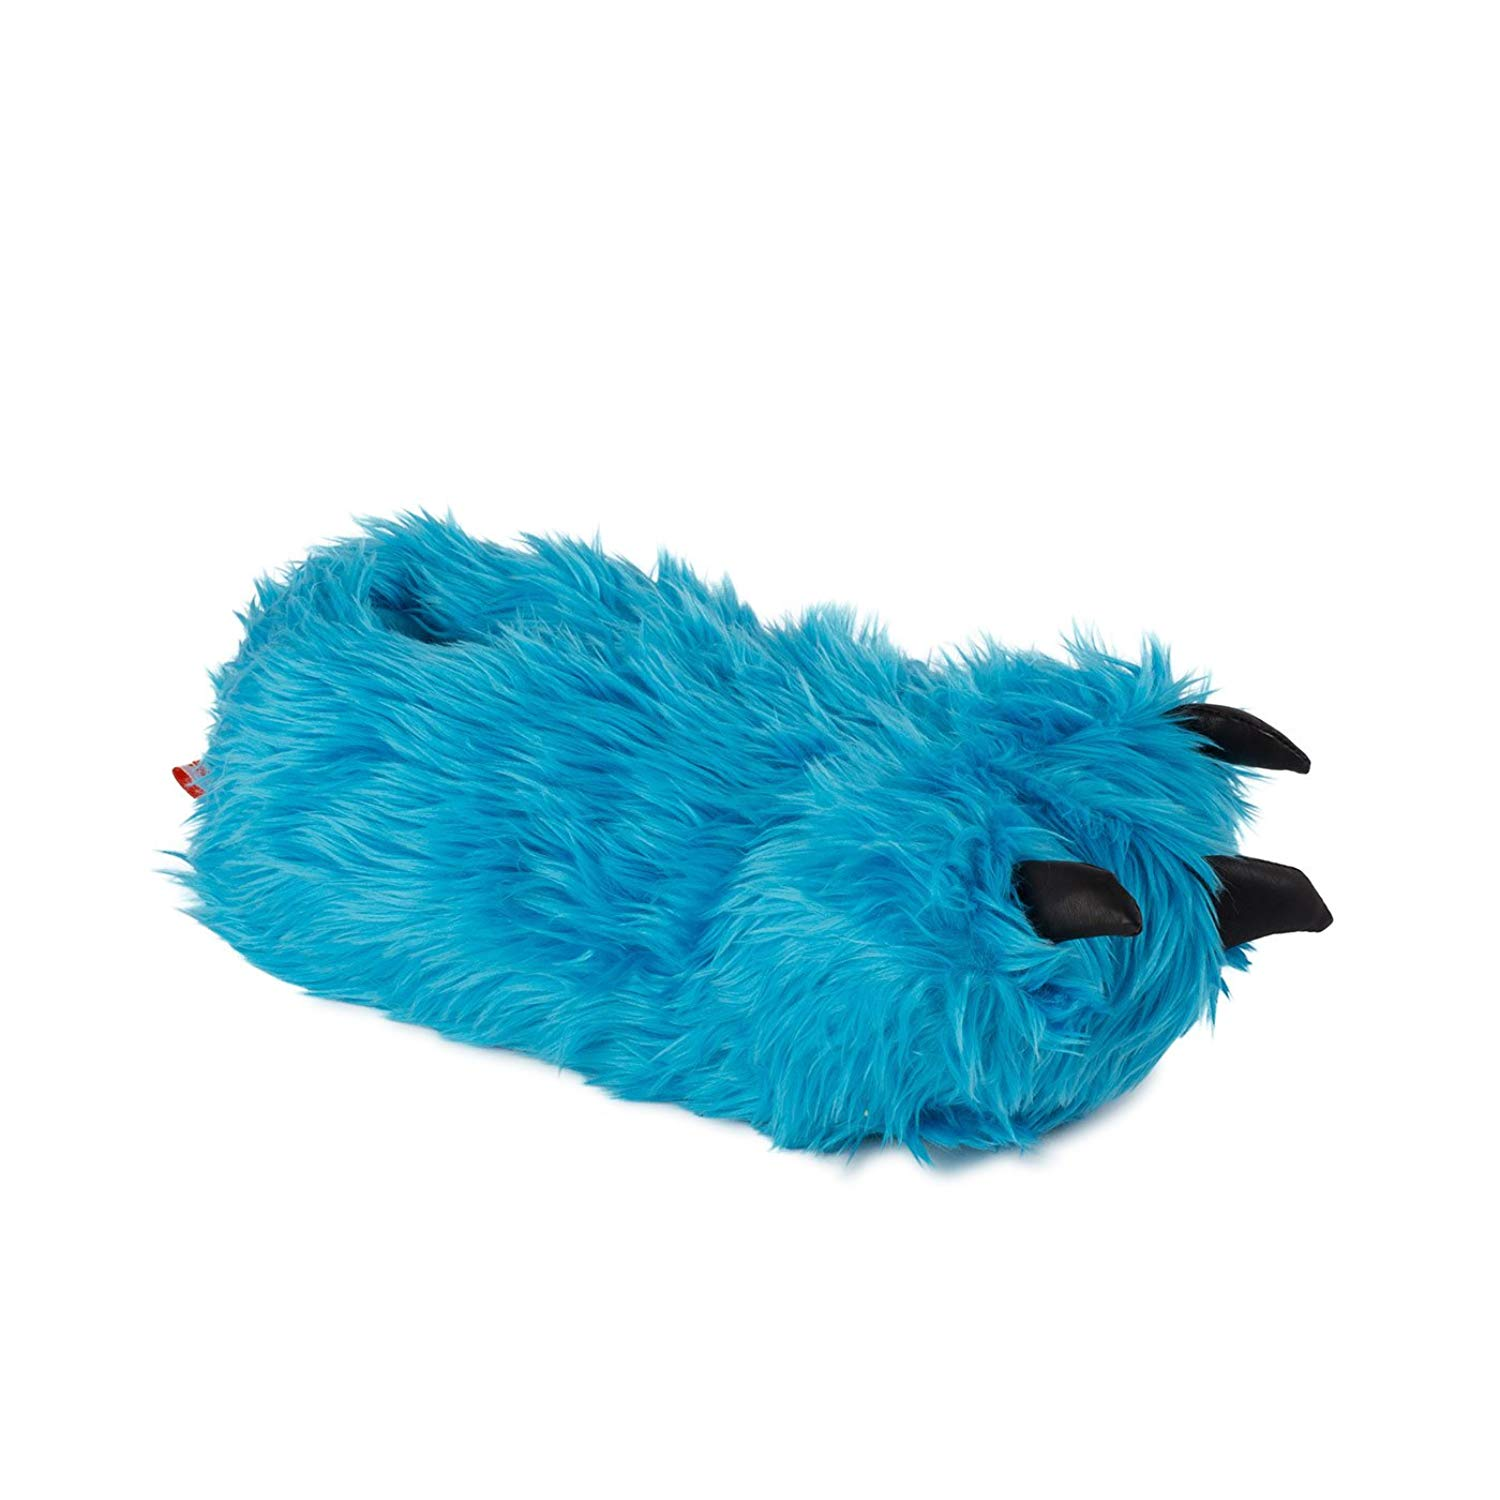 Firmly monster slippers for adults congratulate, seems